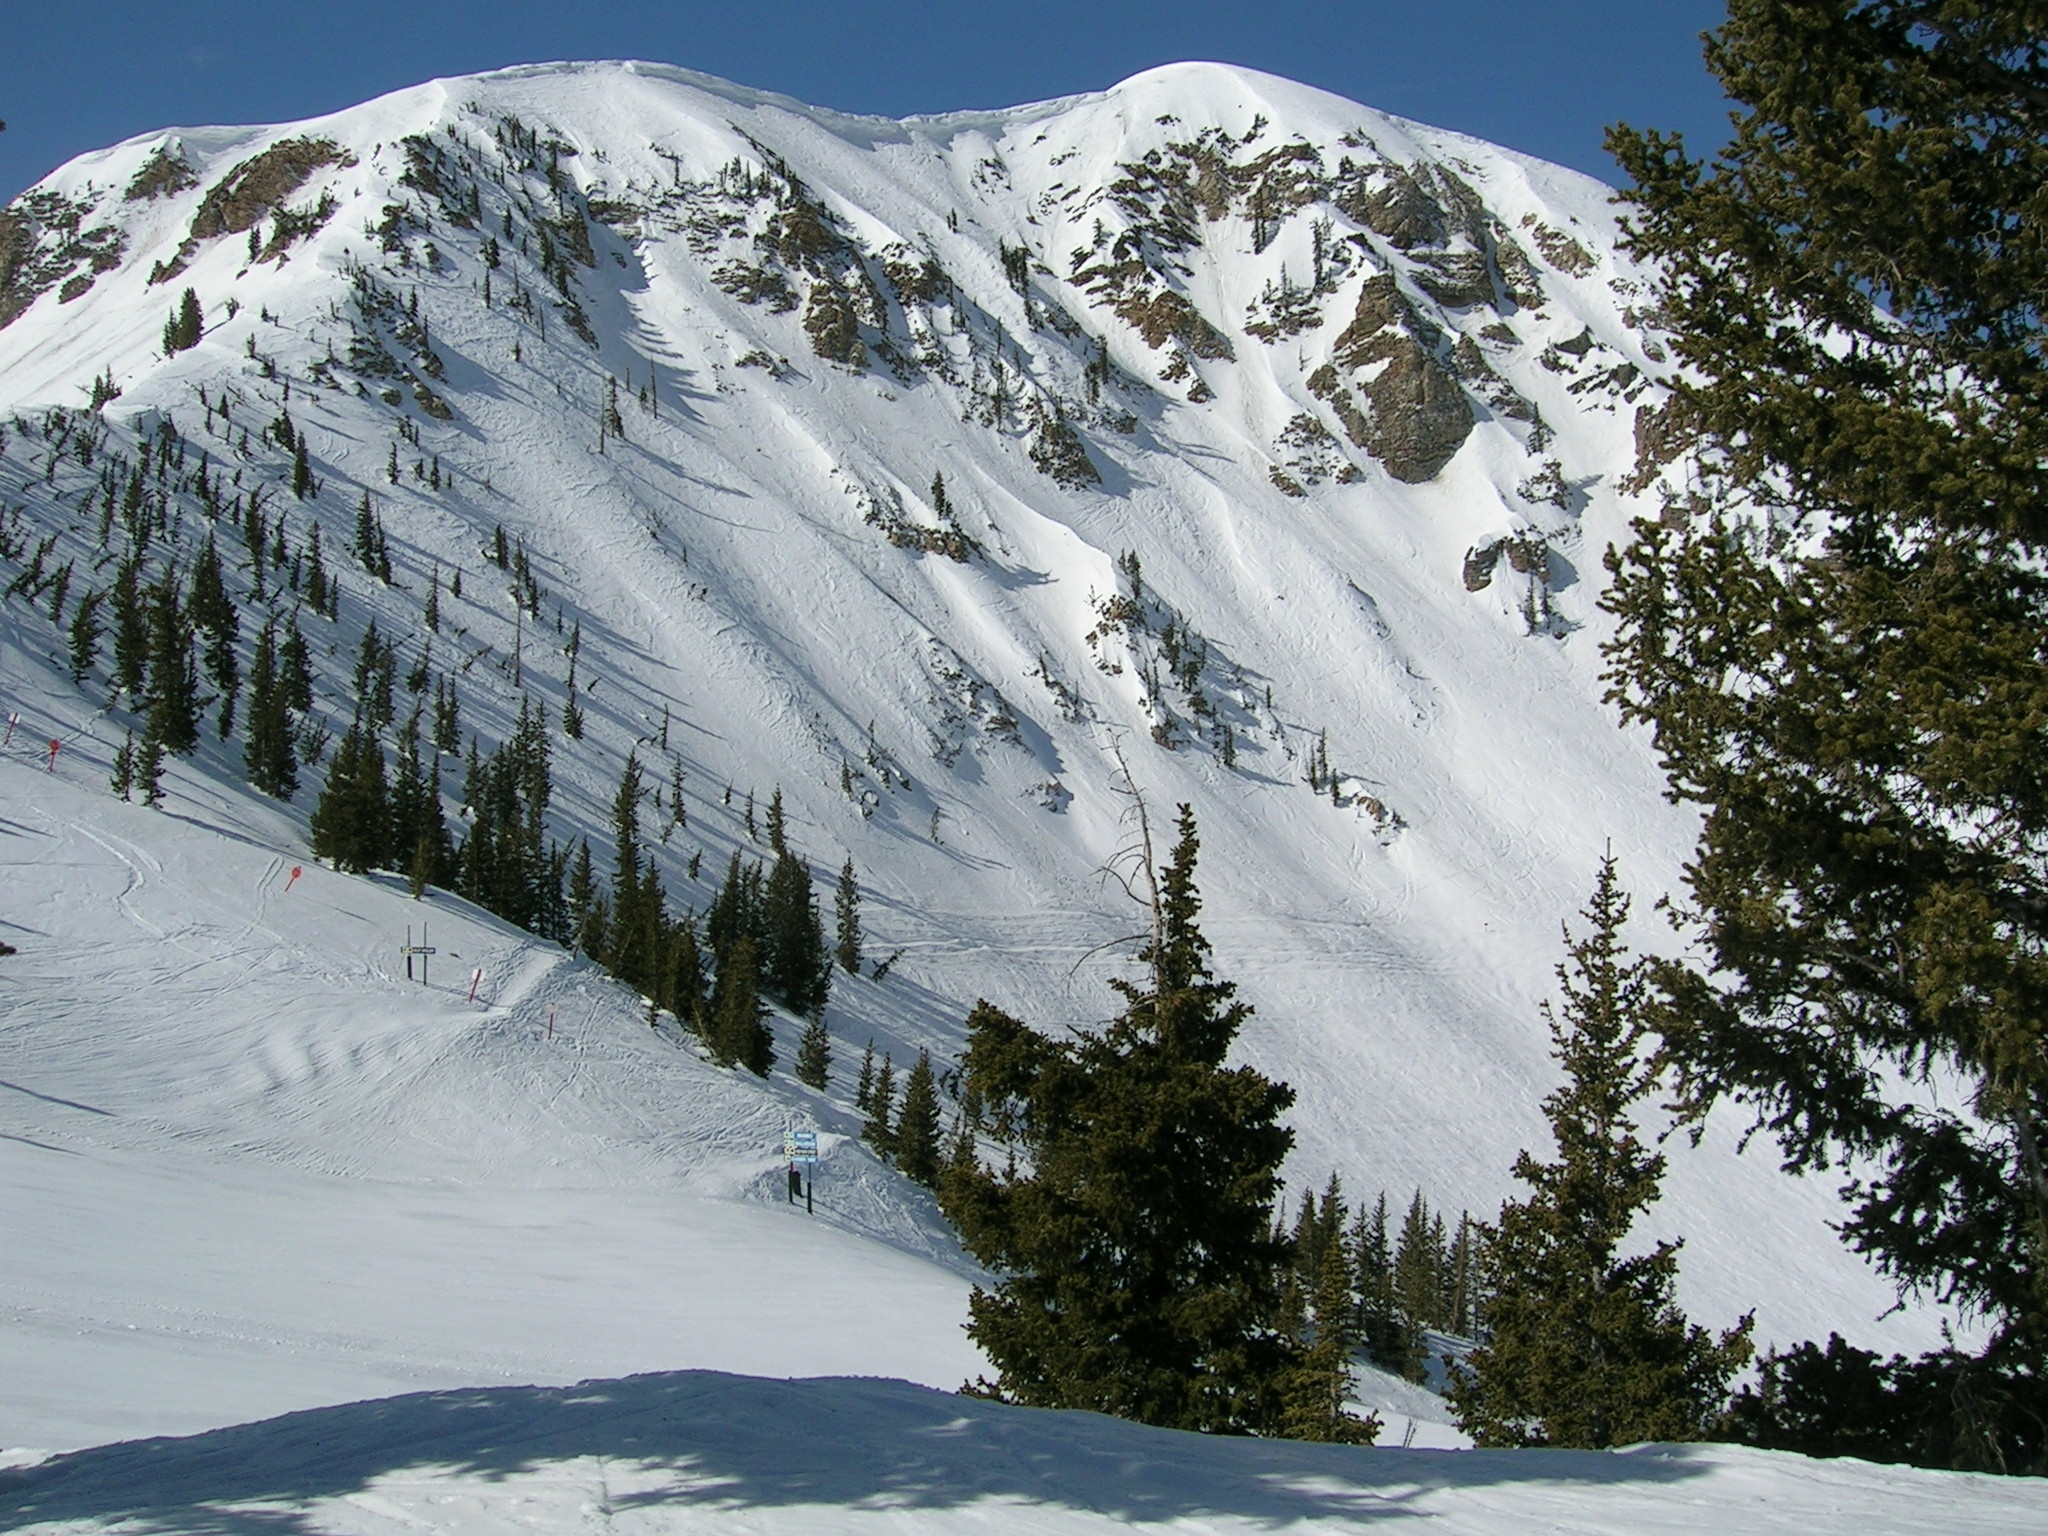 mt baldy senior dating site Check out the ski resort historical snowfall using the graph, mt baldy snow stats to see how much snow mt baldy got last ski season or any ski season dating.